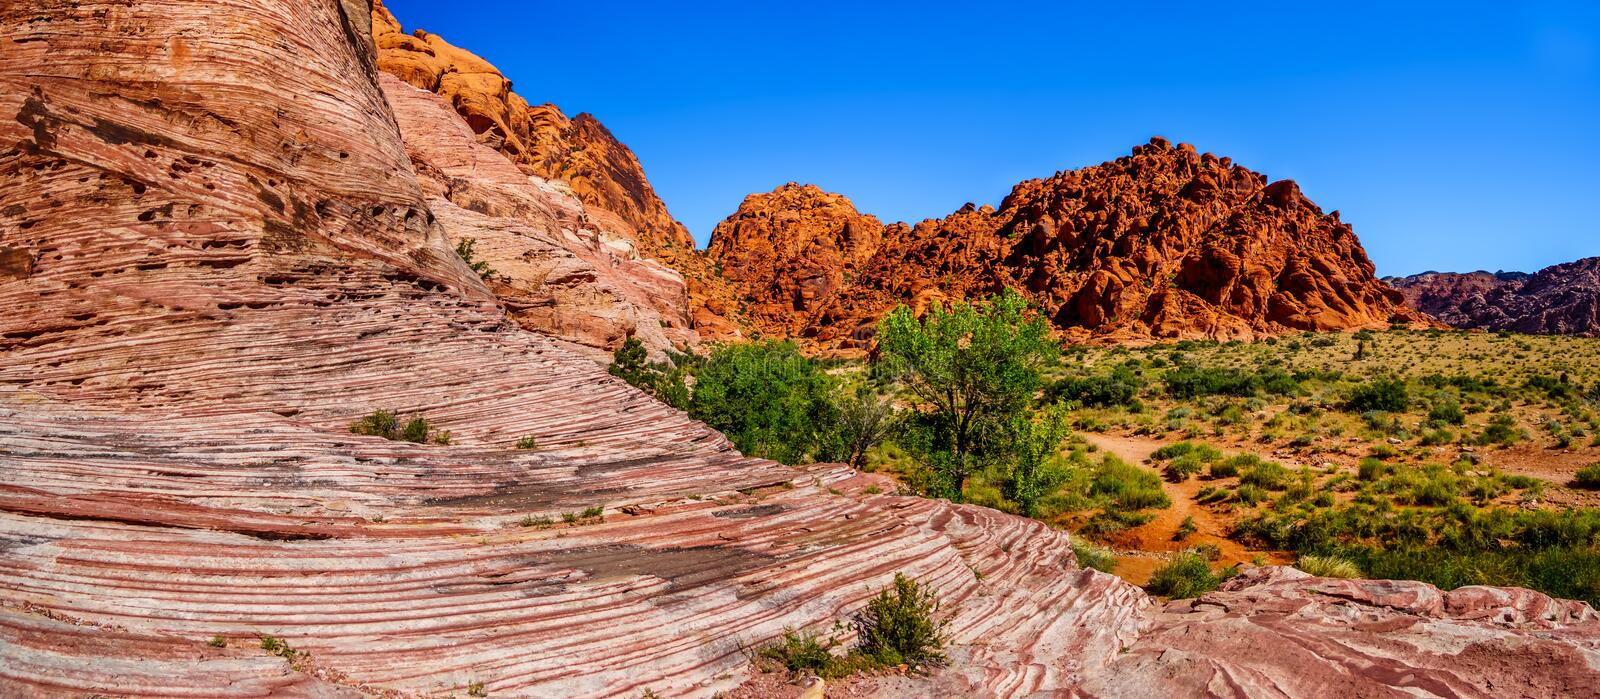 Panorama View of the Red Sandstone Mountains from the Trail to the Guardian Angel Peak in Red Rock Canyon stock image